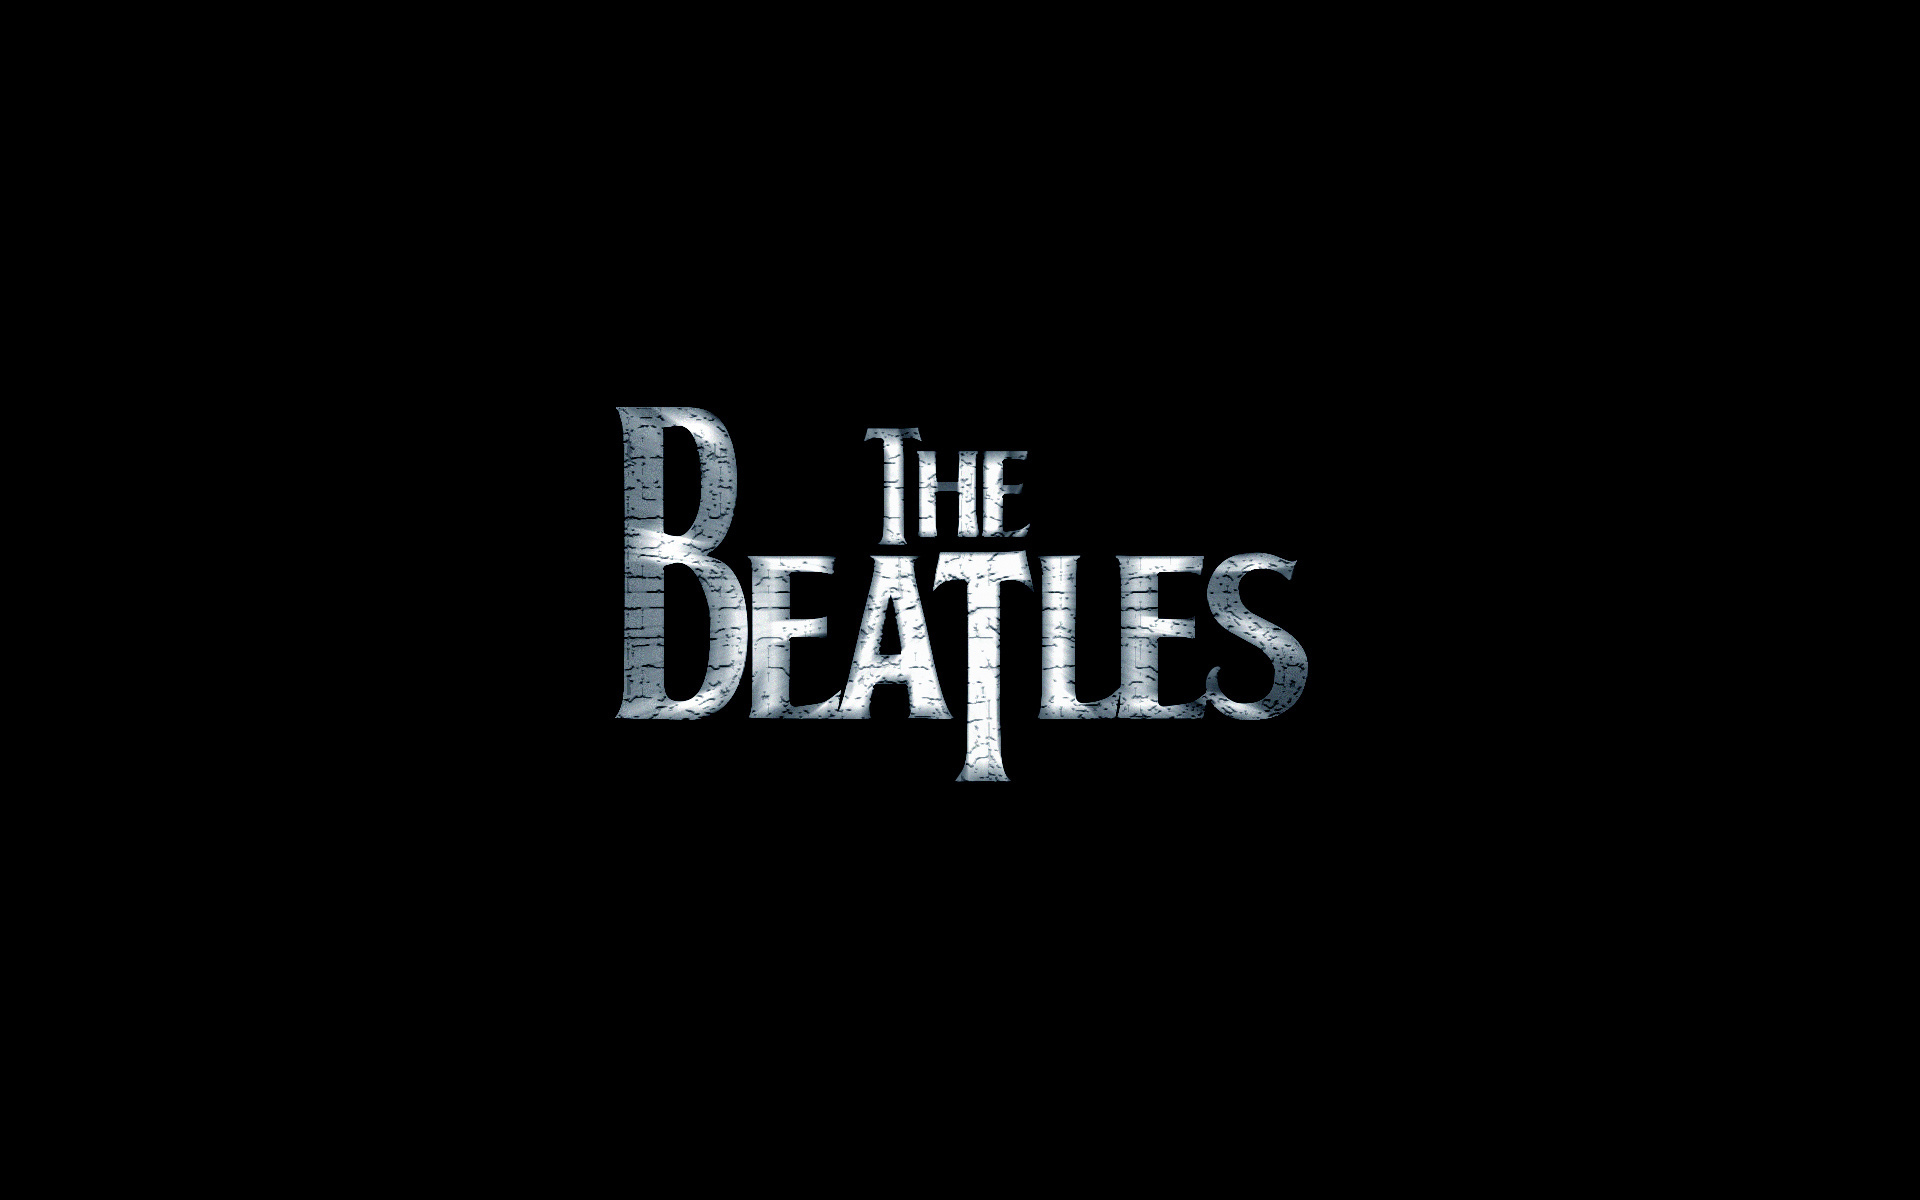 The Beatles Wallpaper The Beatles 13 1920x1200